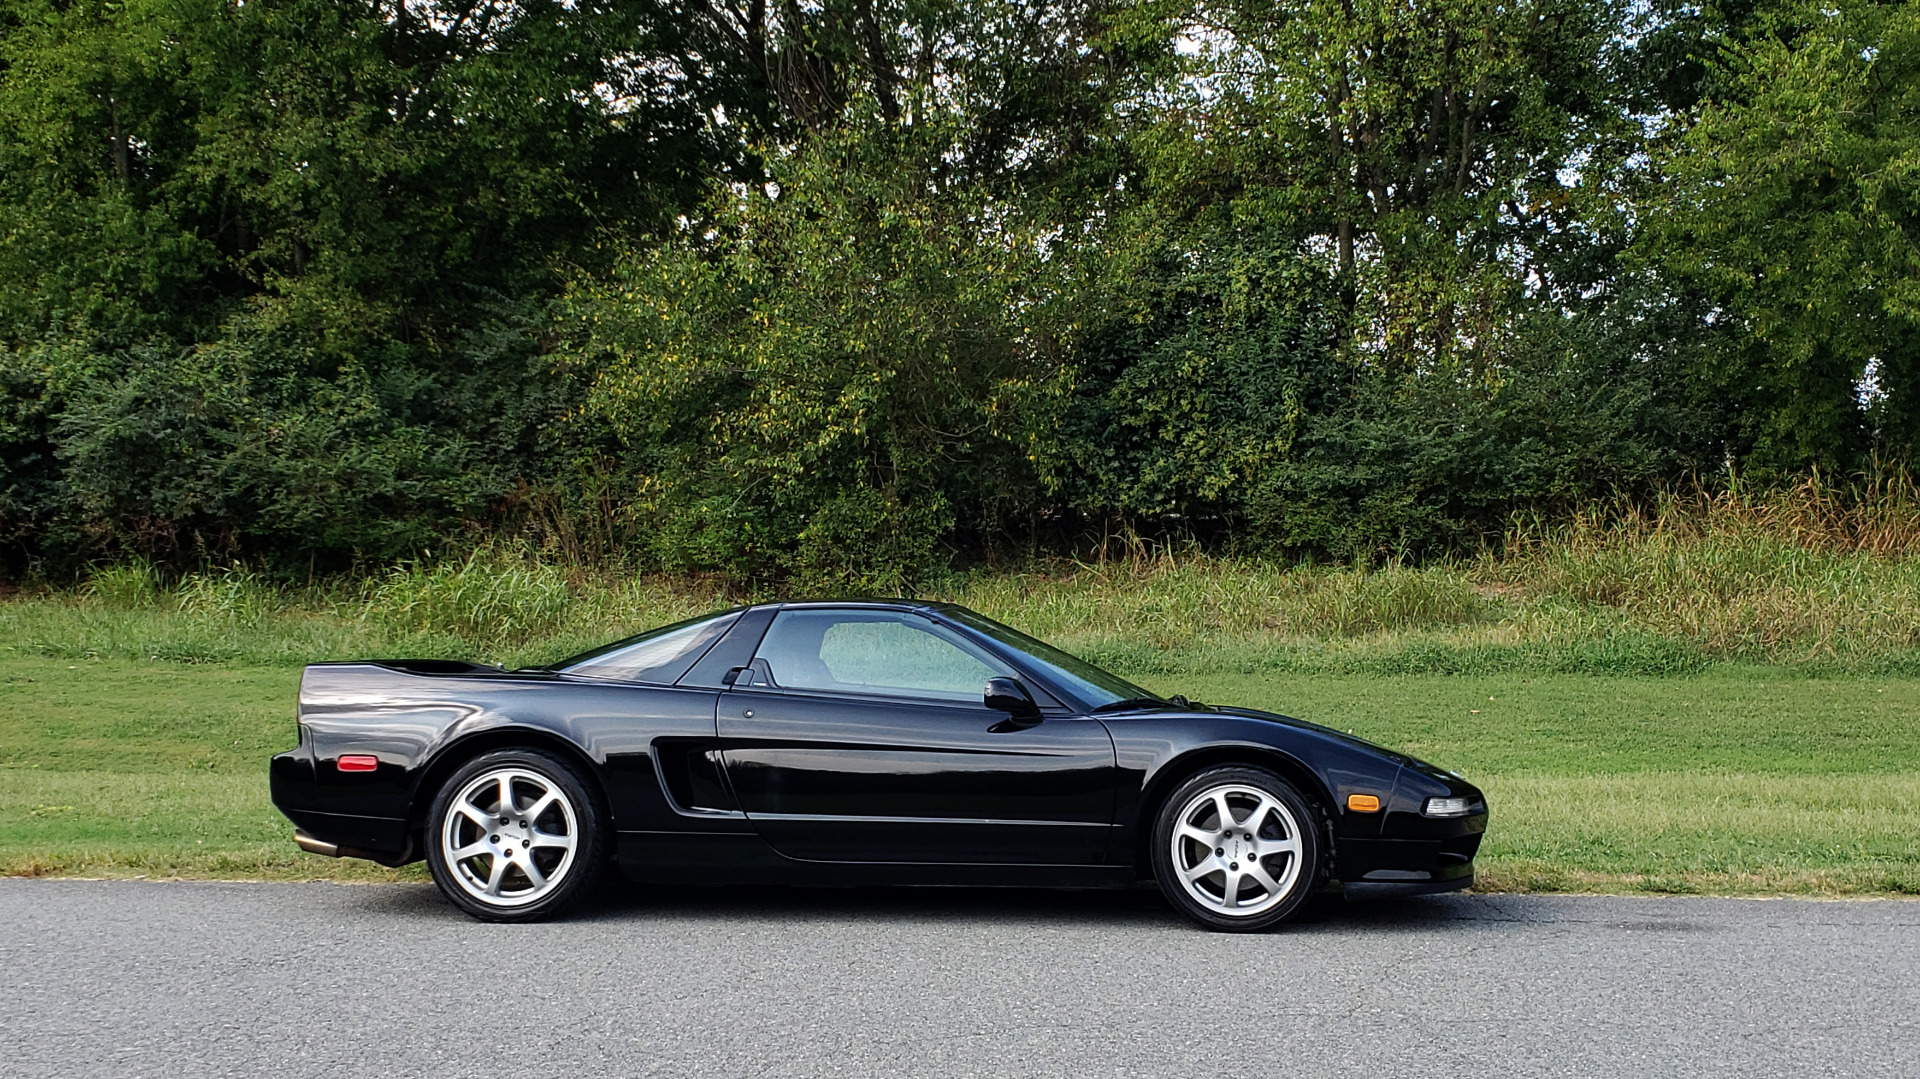 Used 1995 Acura NSX OPEN TOP / 5-SPD MAN / LOW MILES / SUPER CLEAN for sale Sold at Formula Imports in Charlotte NC 28227 30